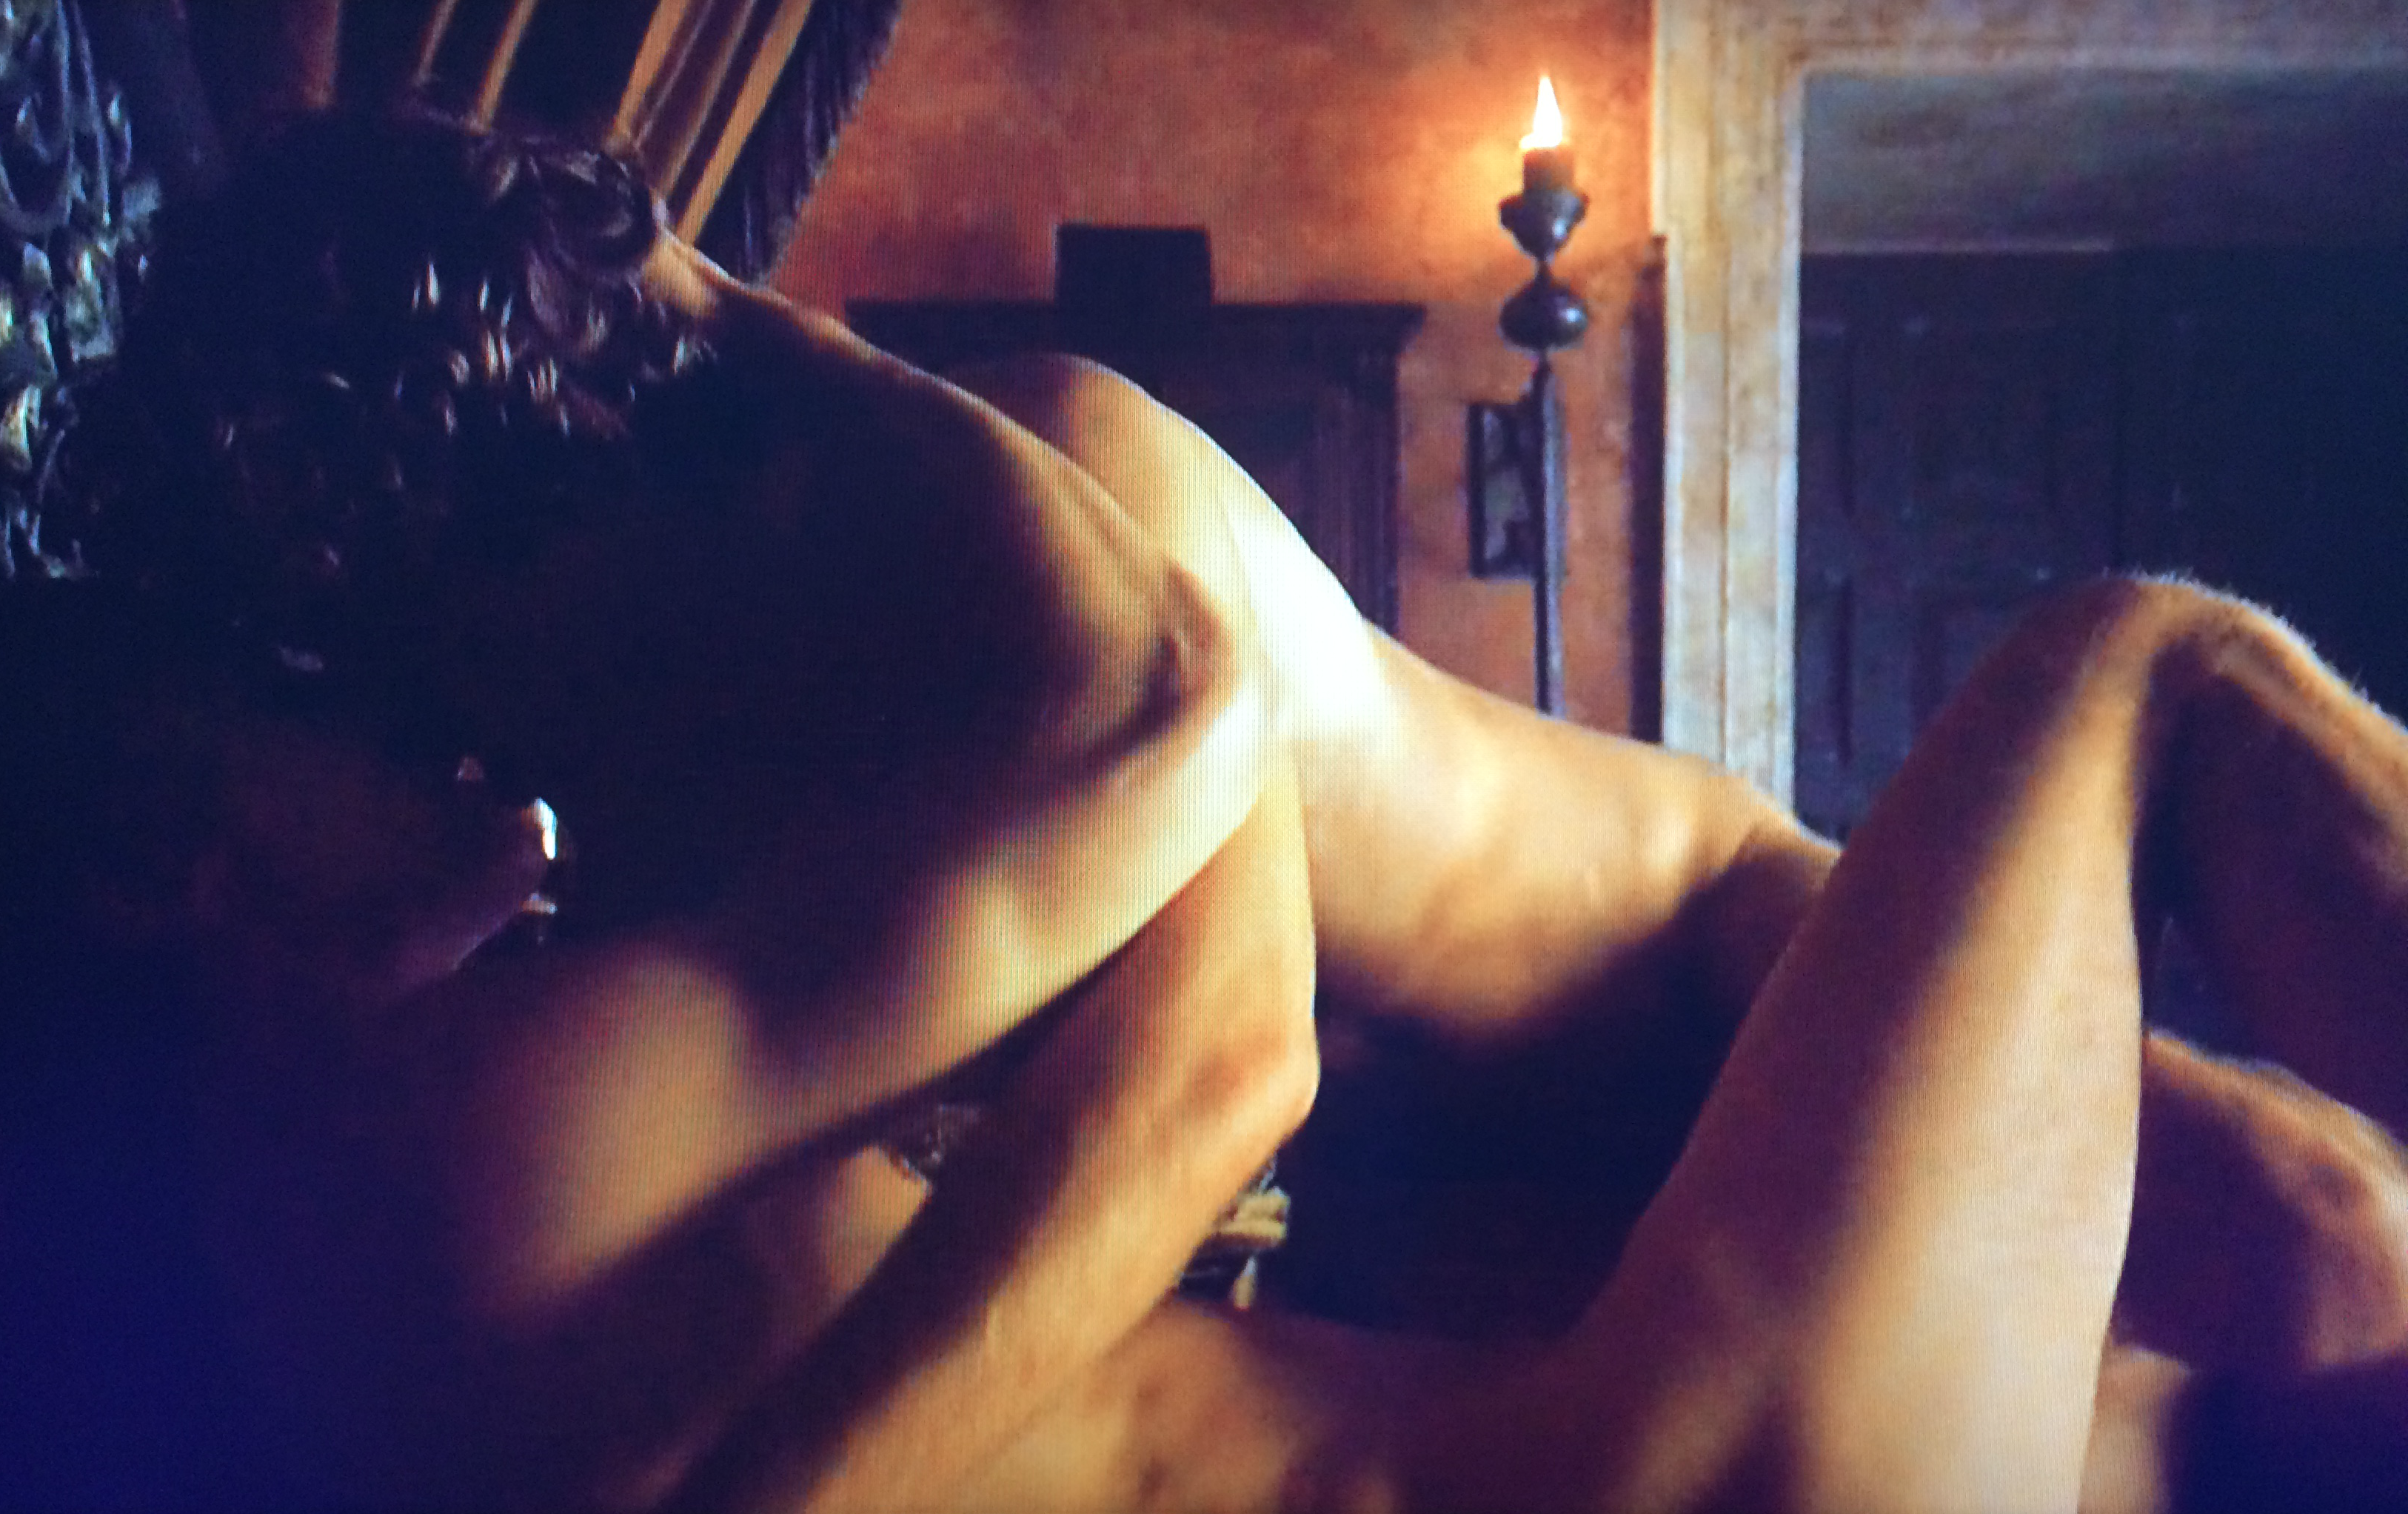 Loras Tyrell and Olyvar Game of Thrones gay sex